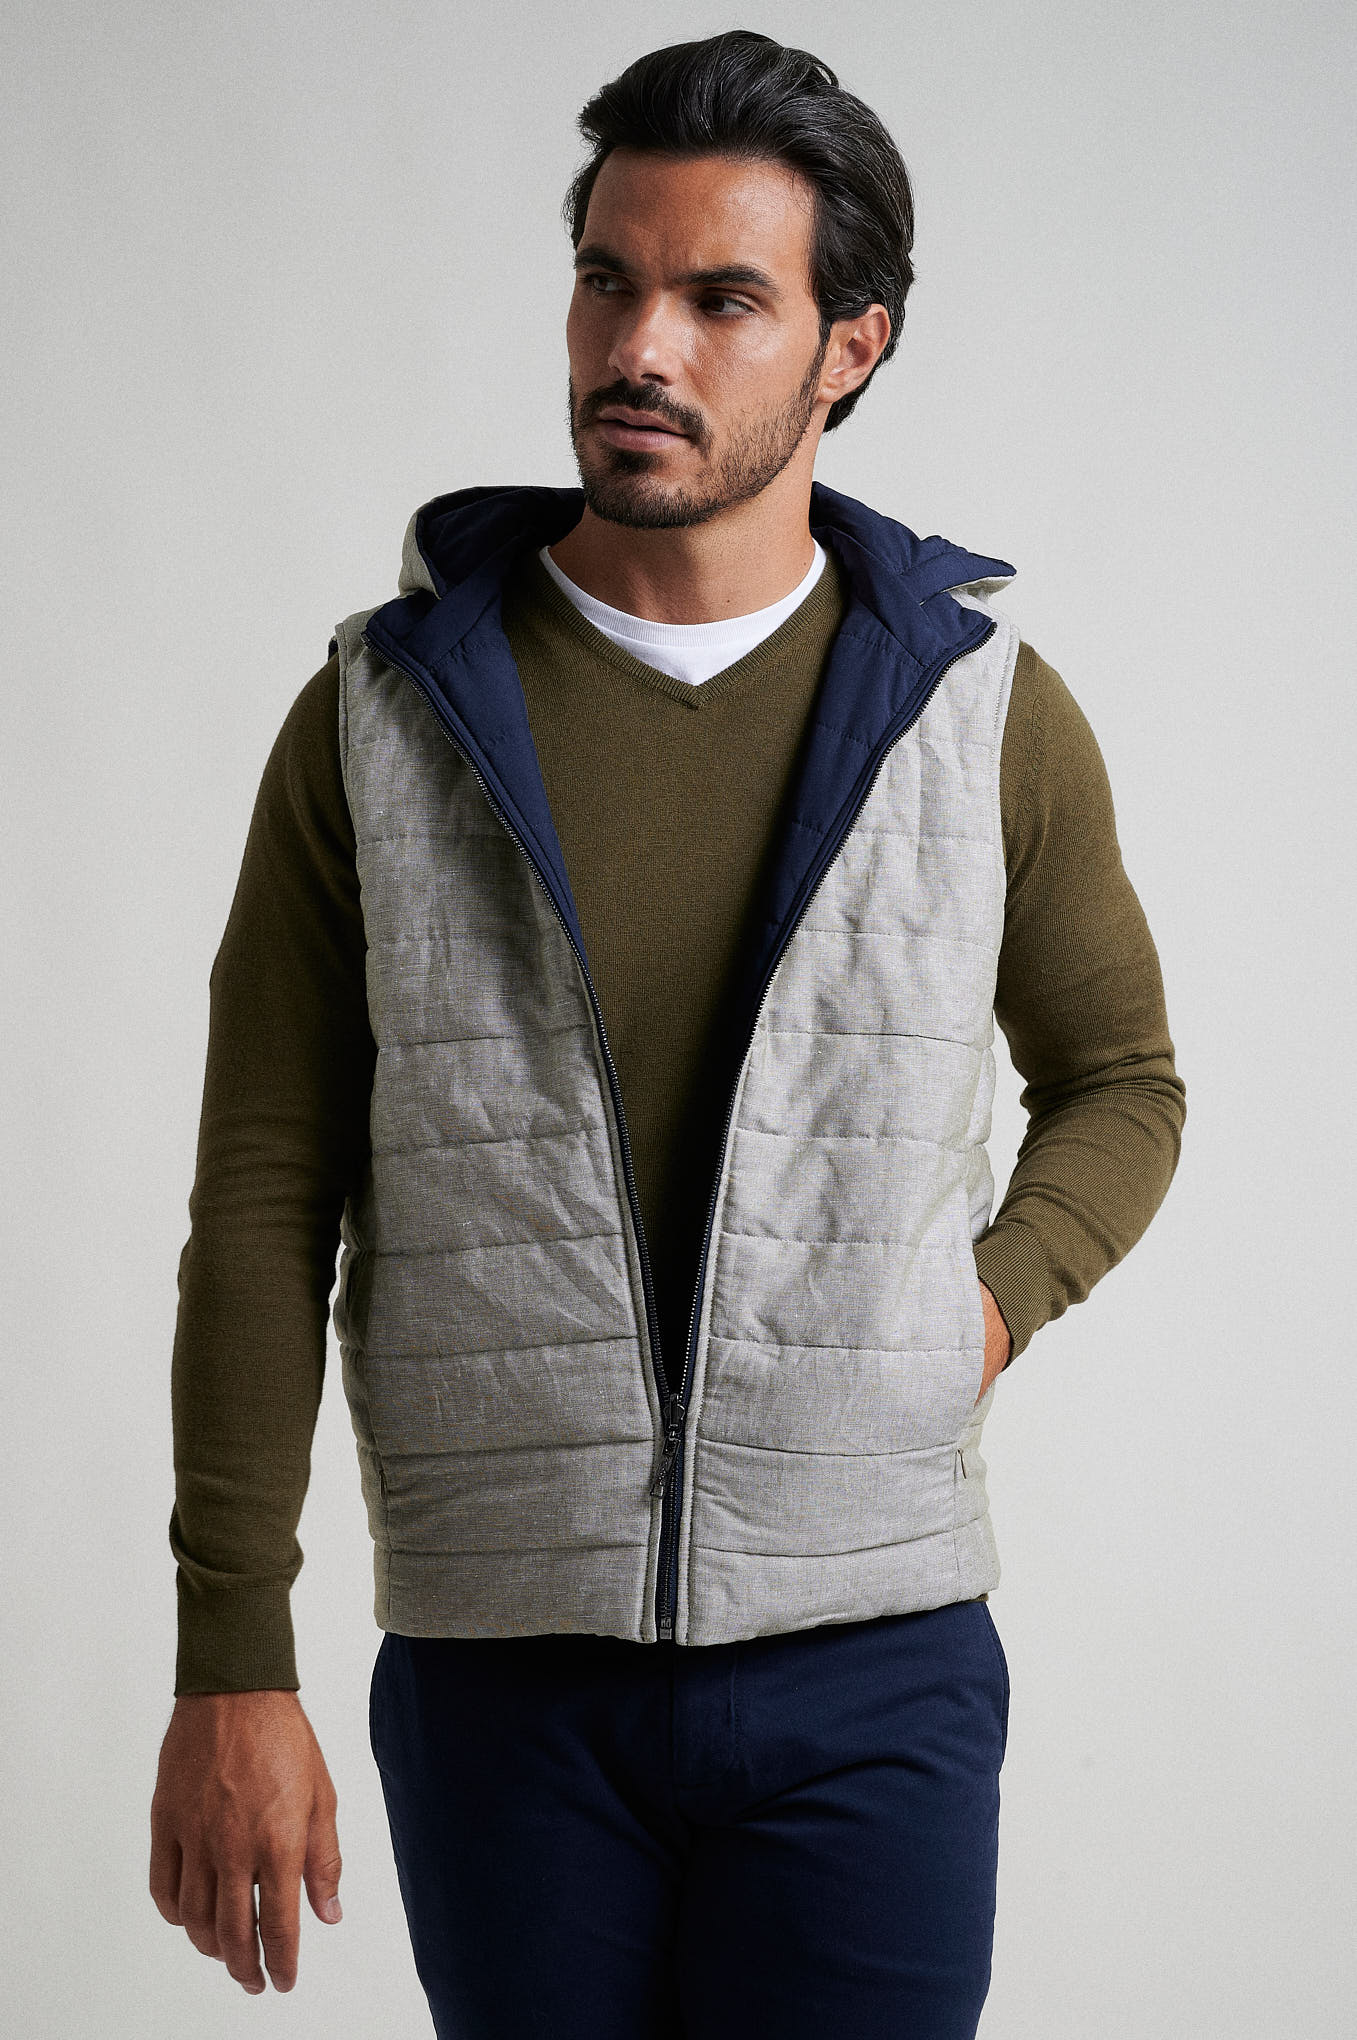 Waist Coat Dark Blue Casual Man